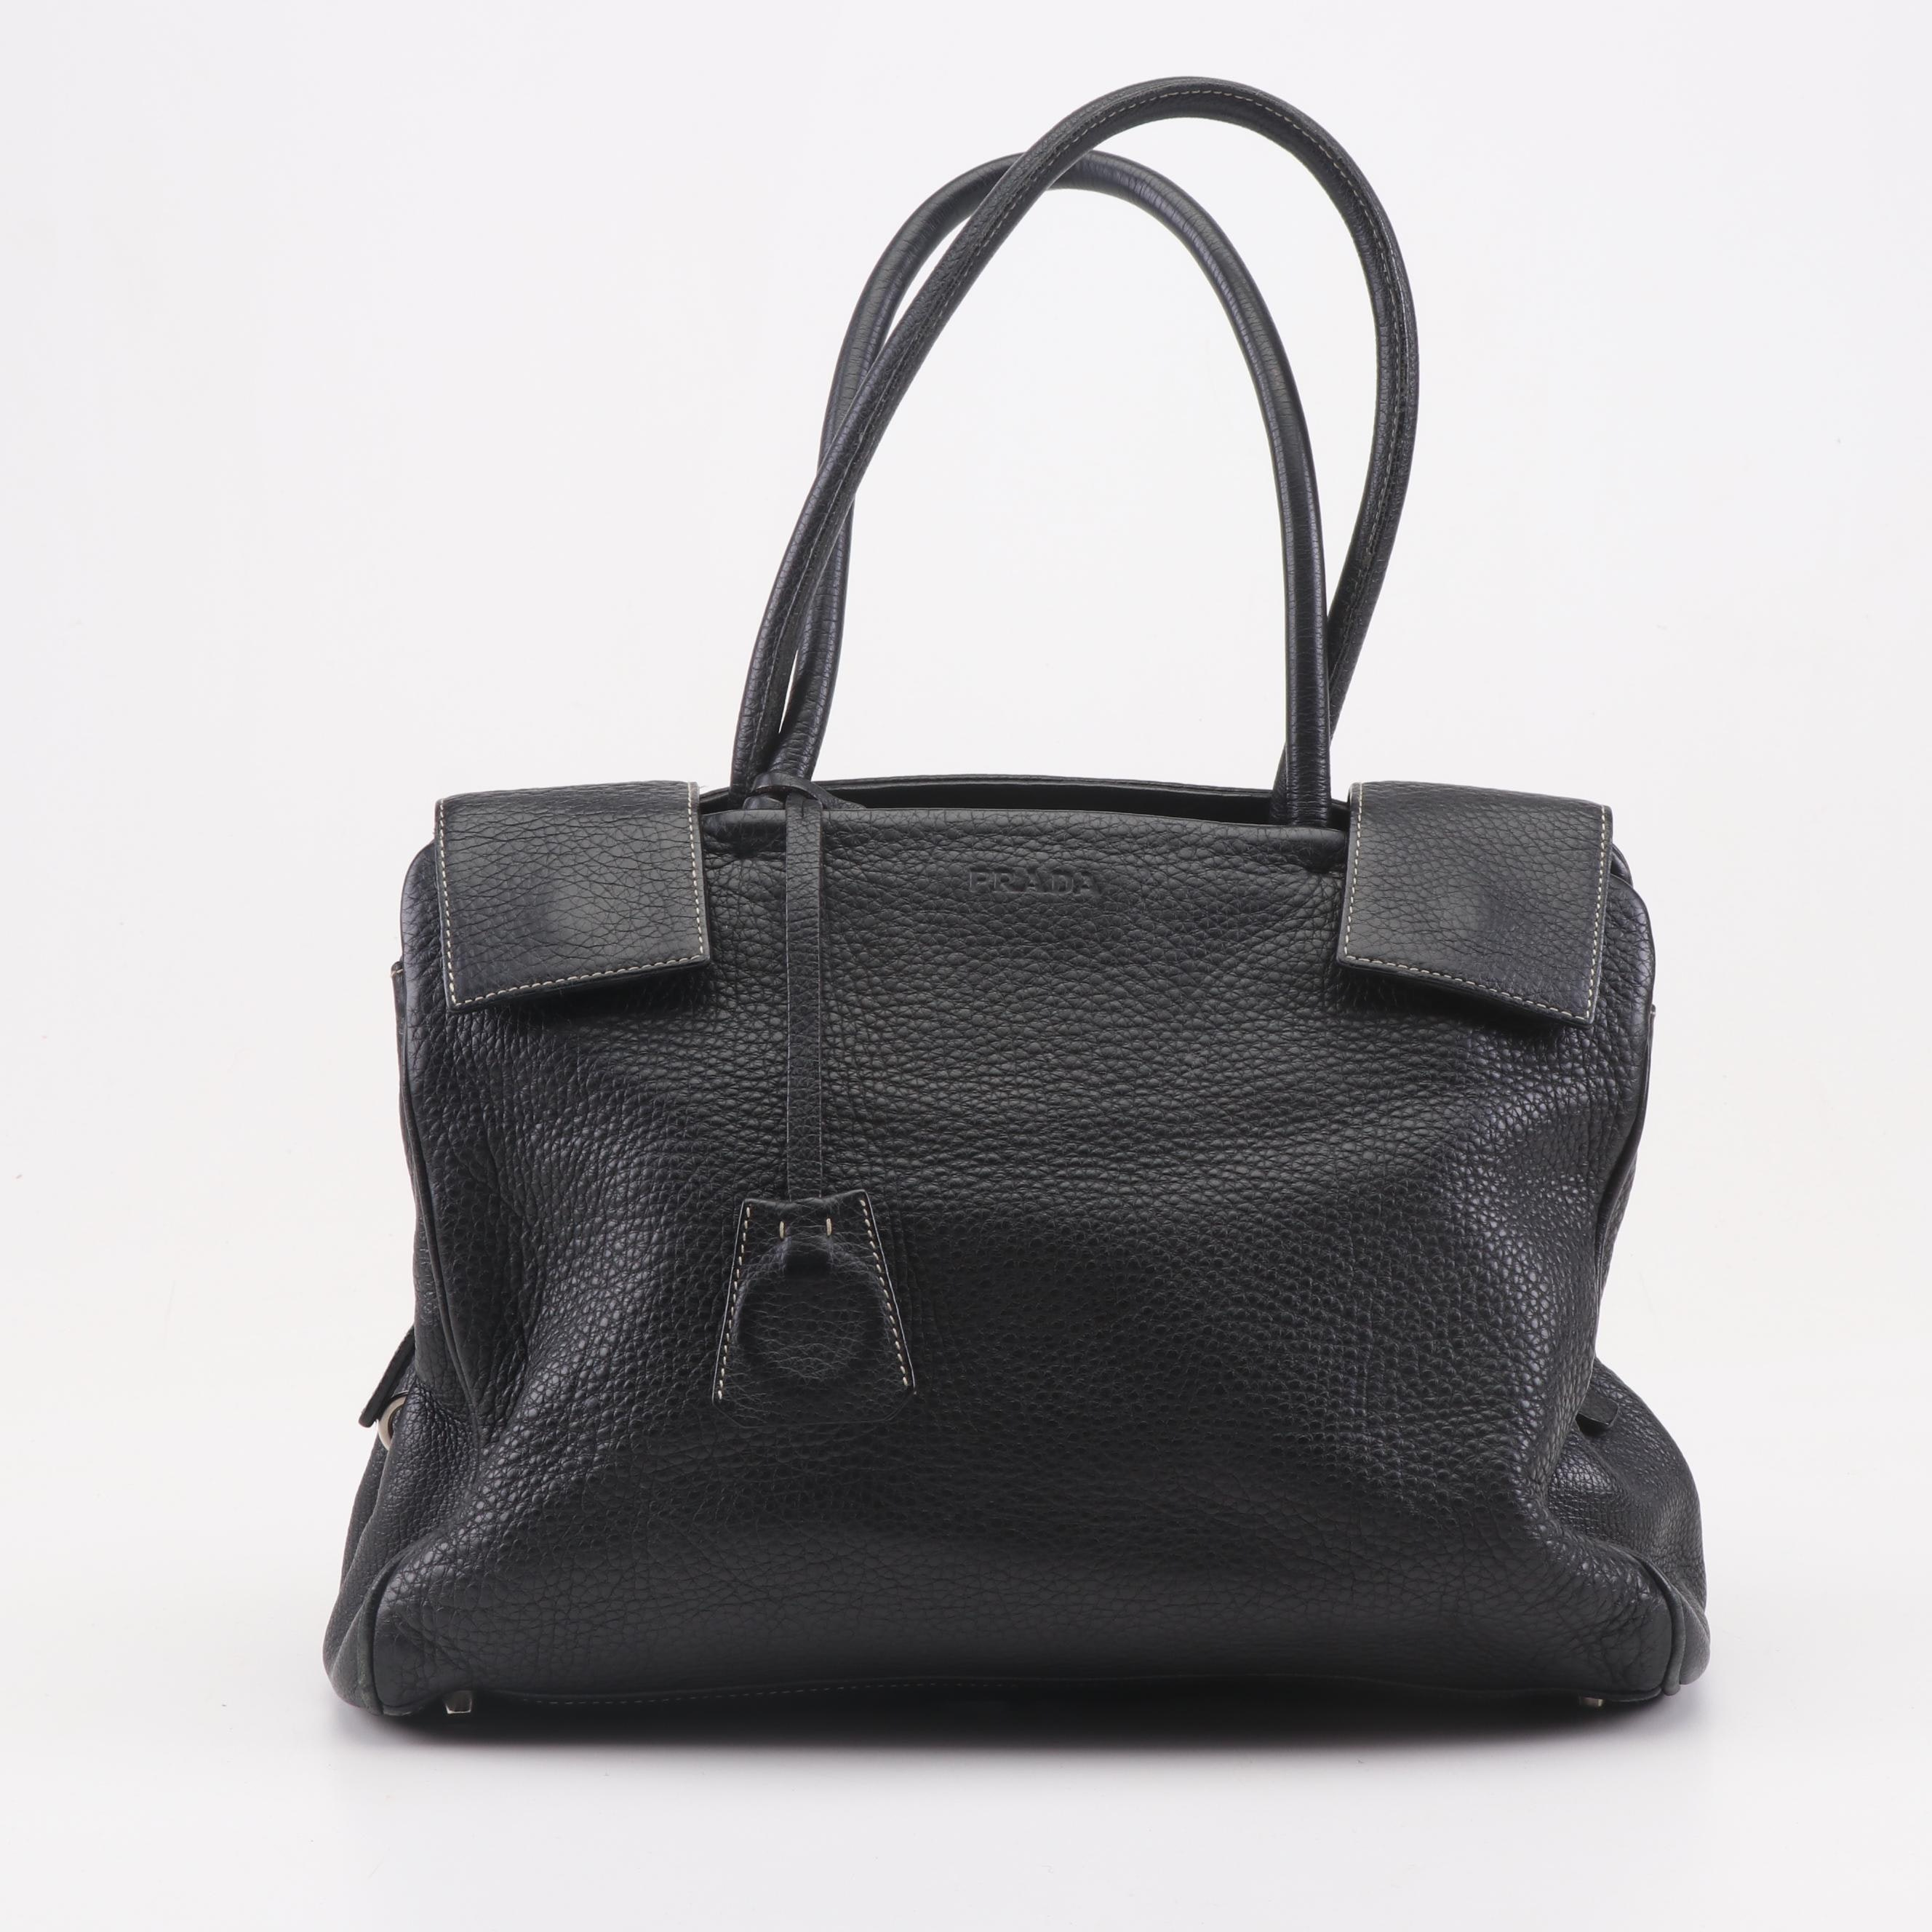 Women's Prada Black Pebbled Leather Tote